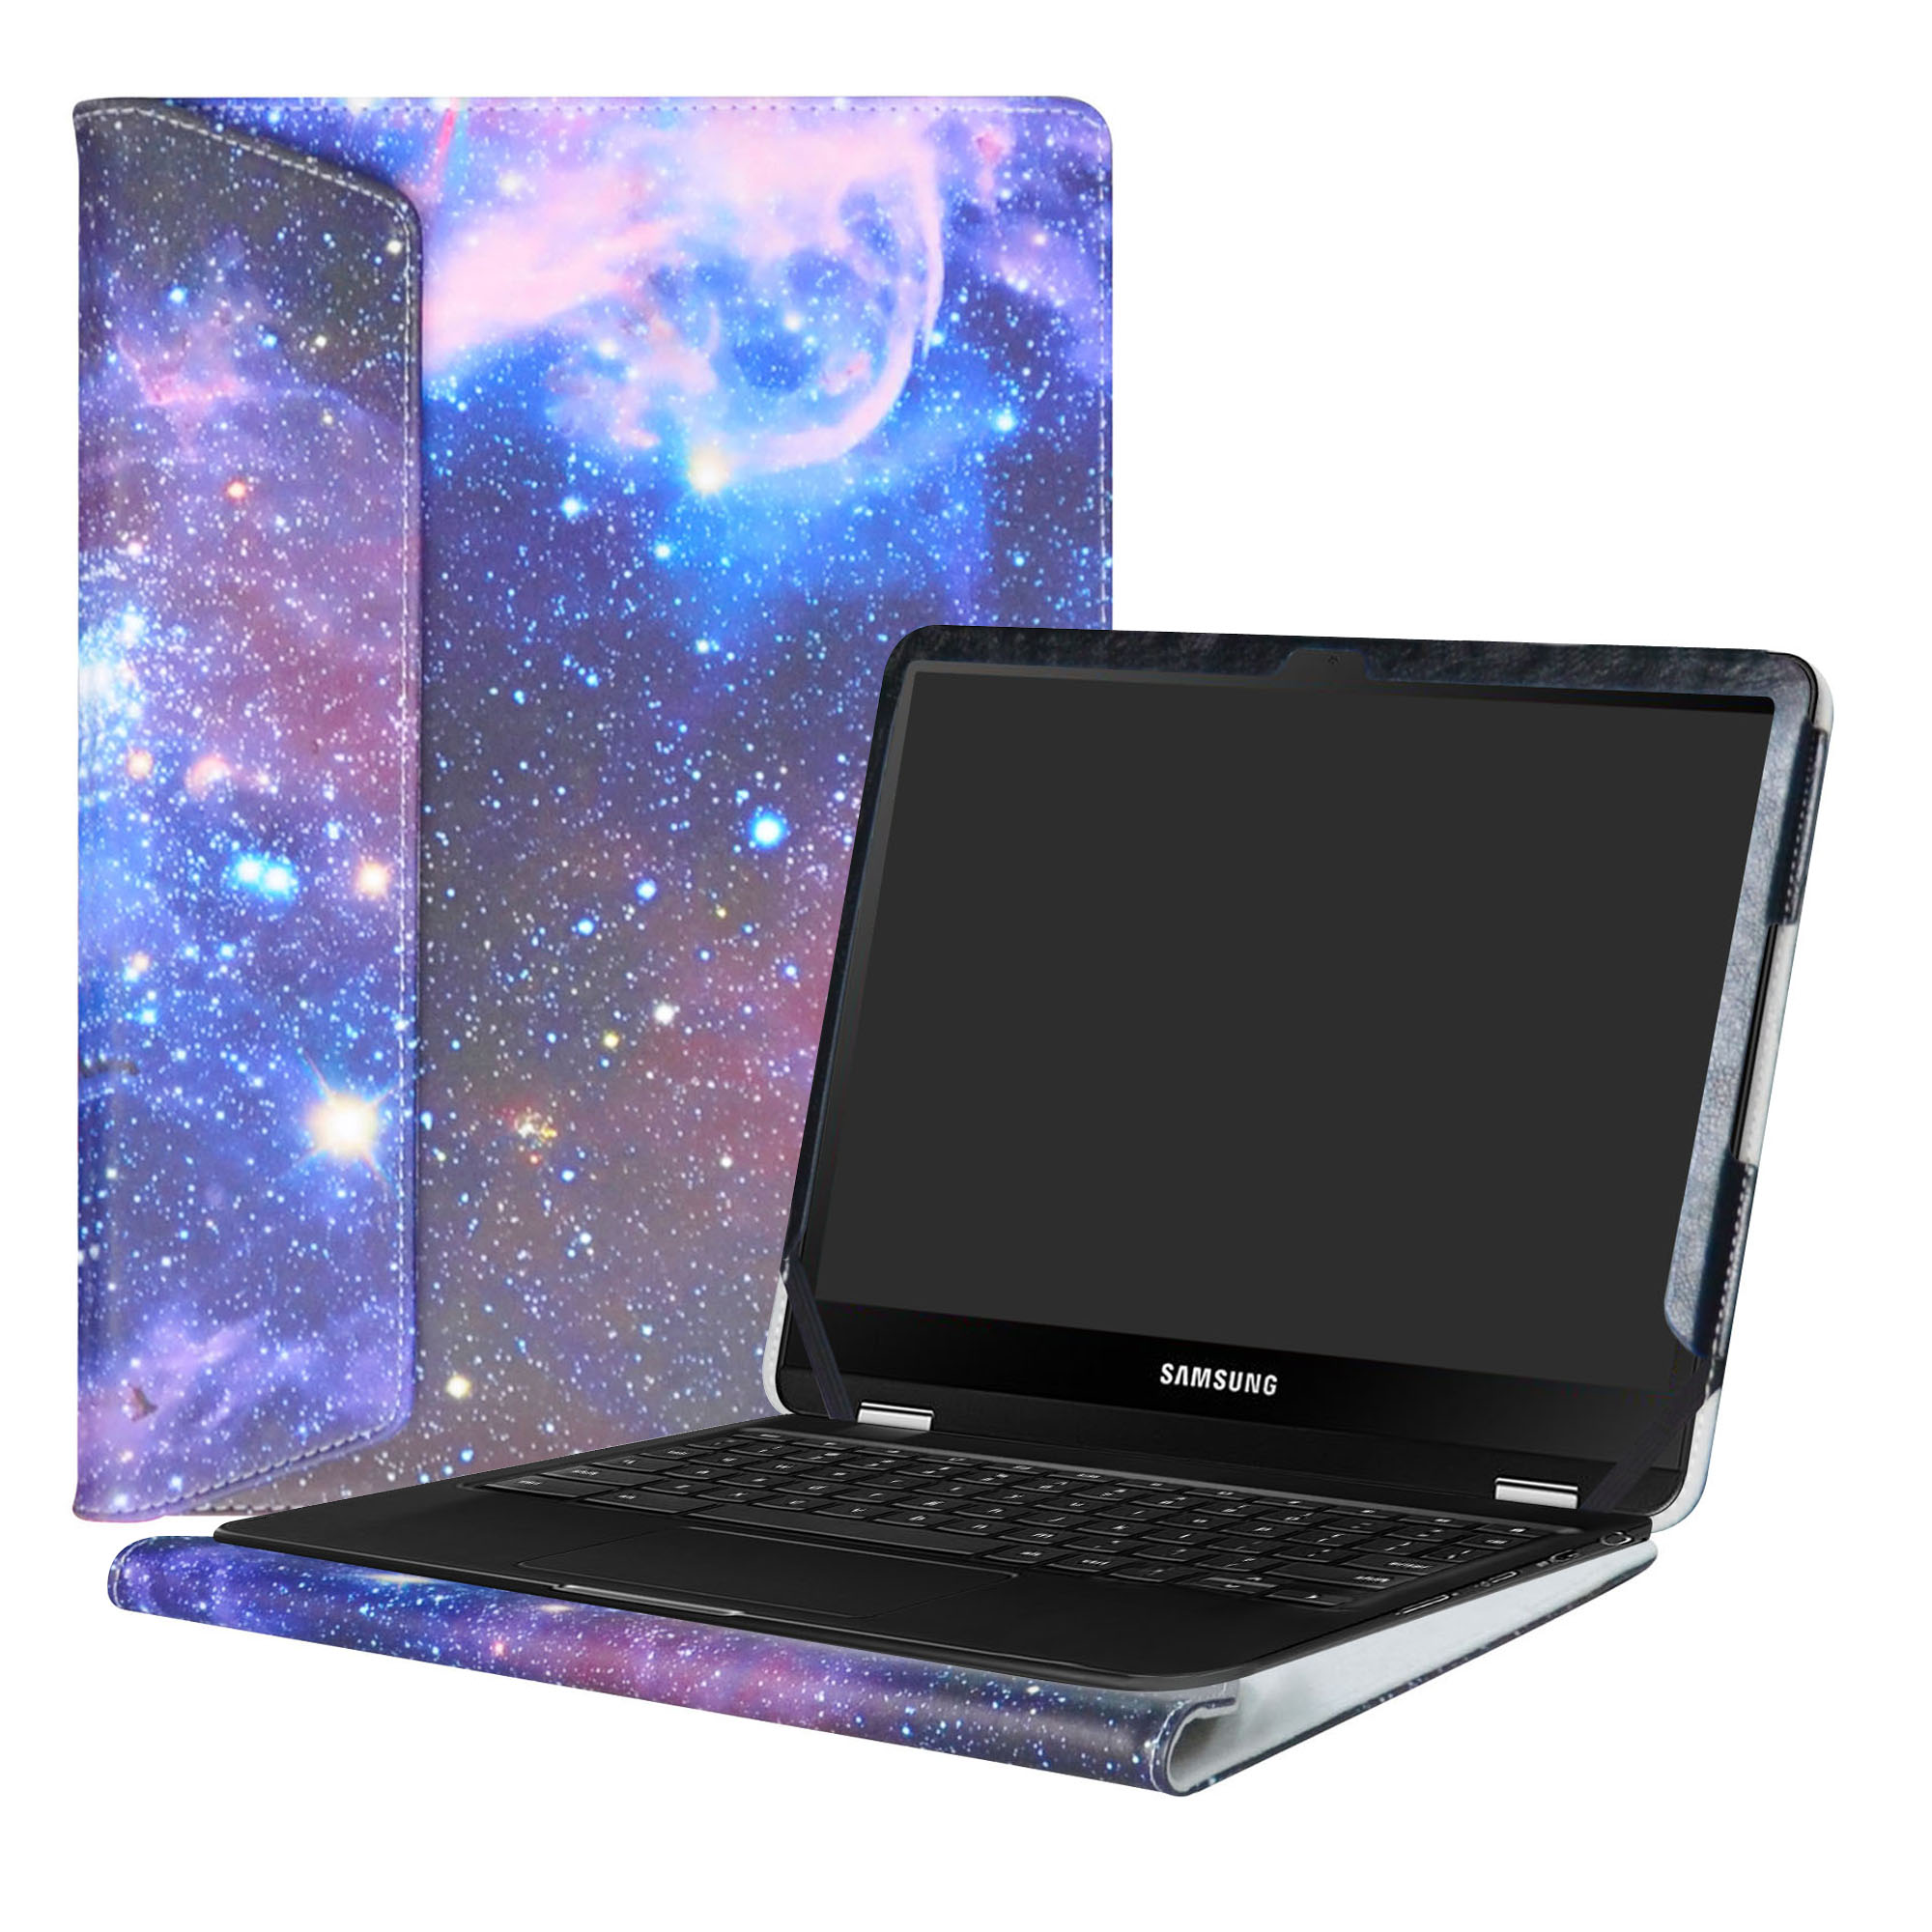 black protective hard shell case cover for 12.3 Samsung chromebook plus XE513C24